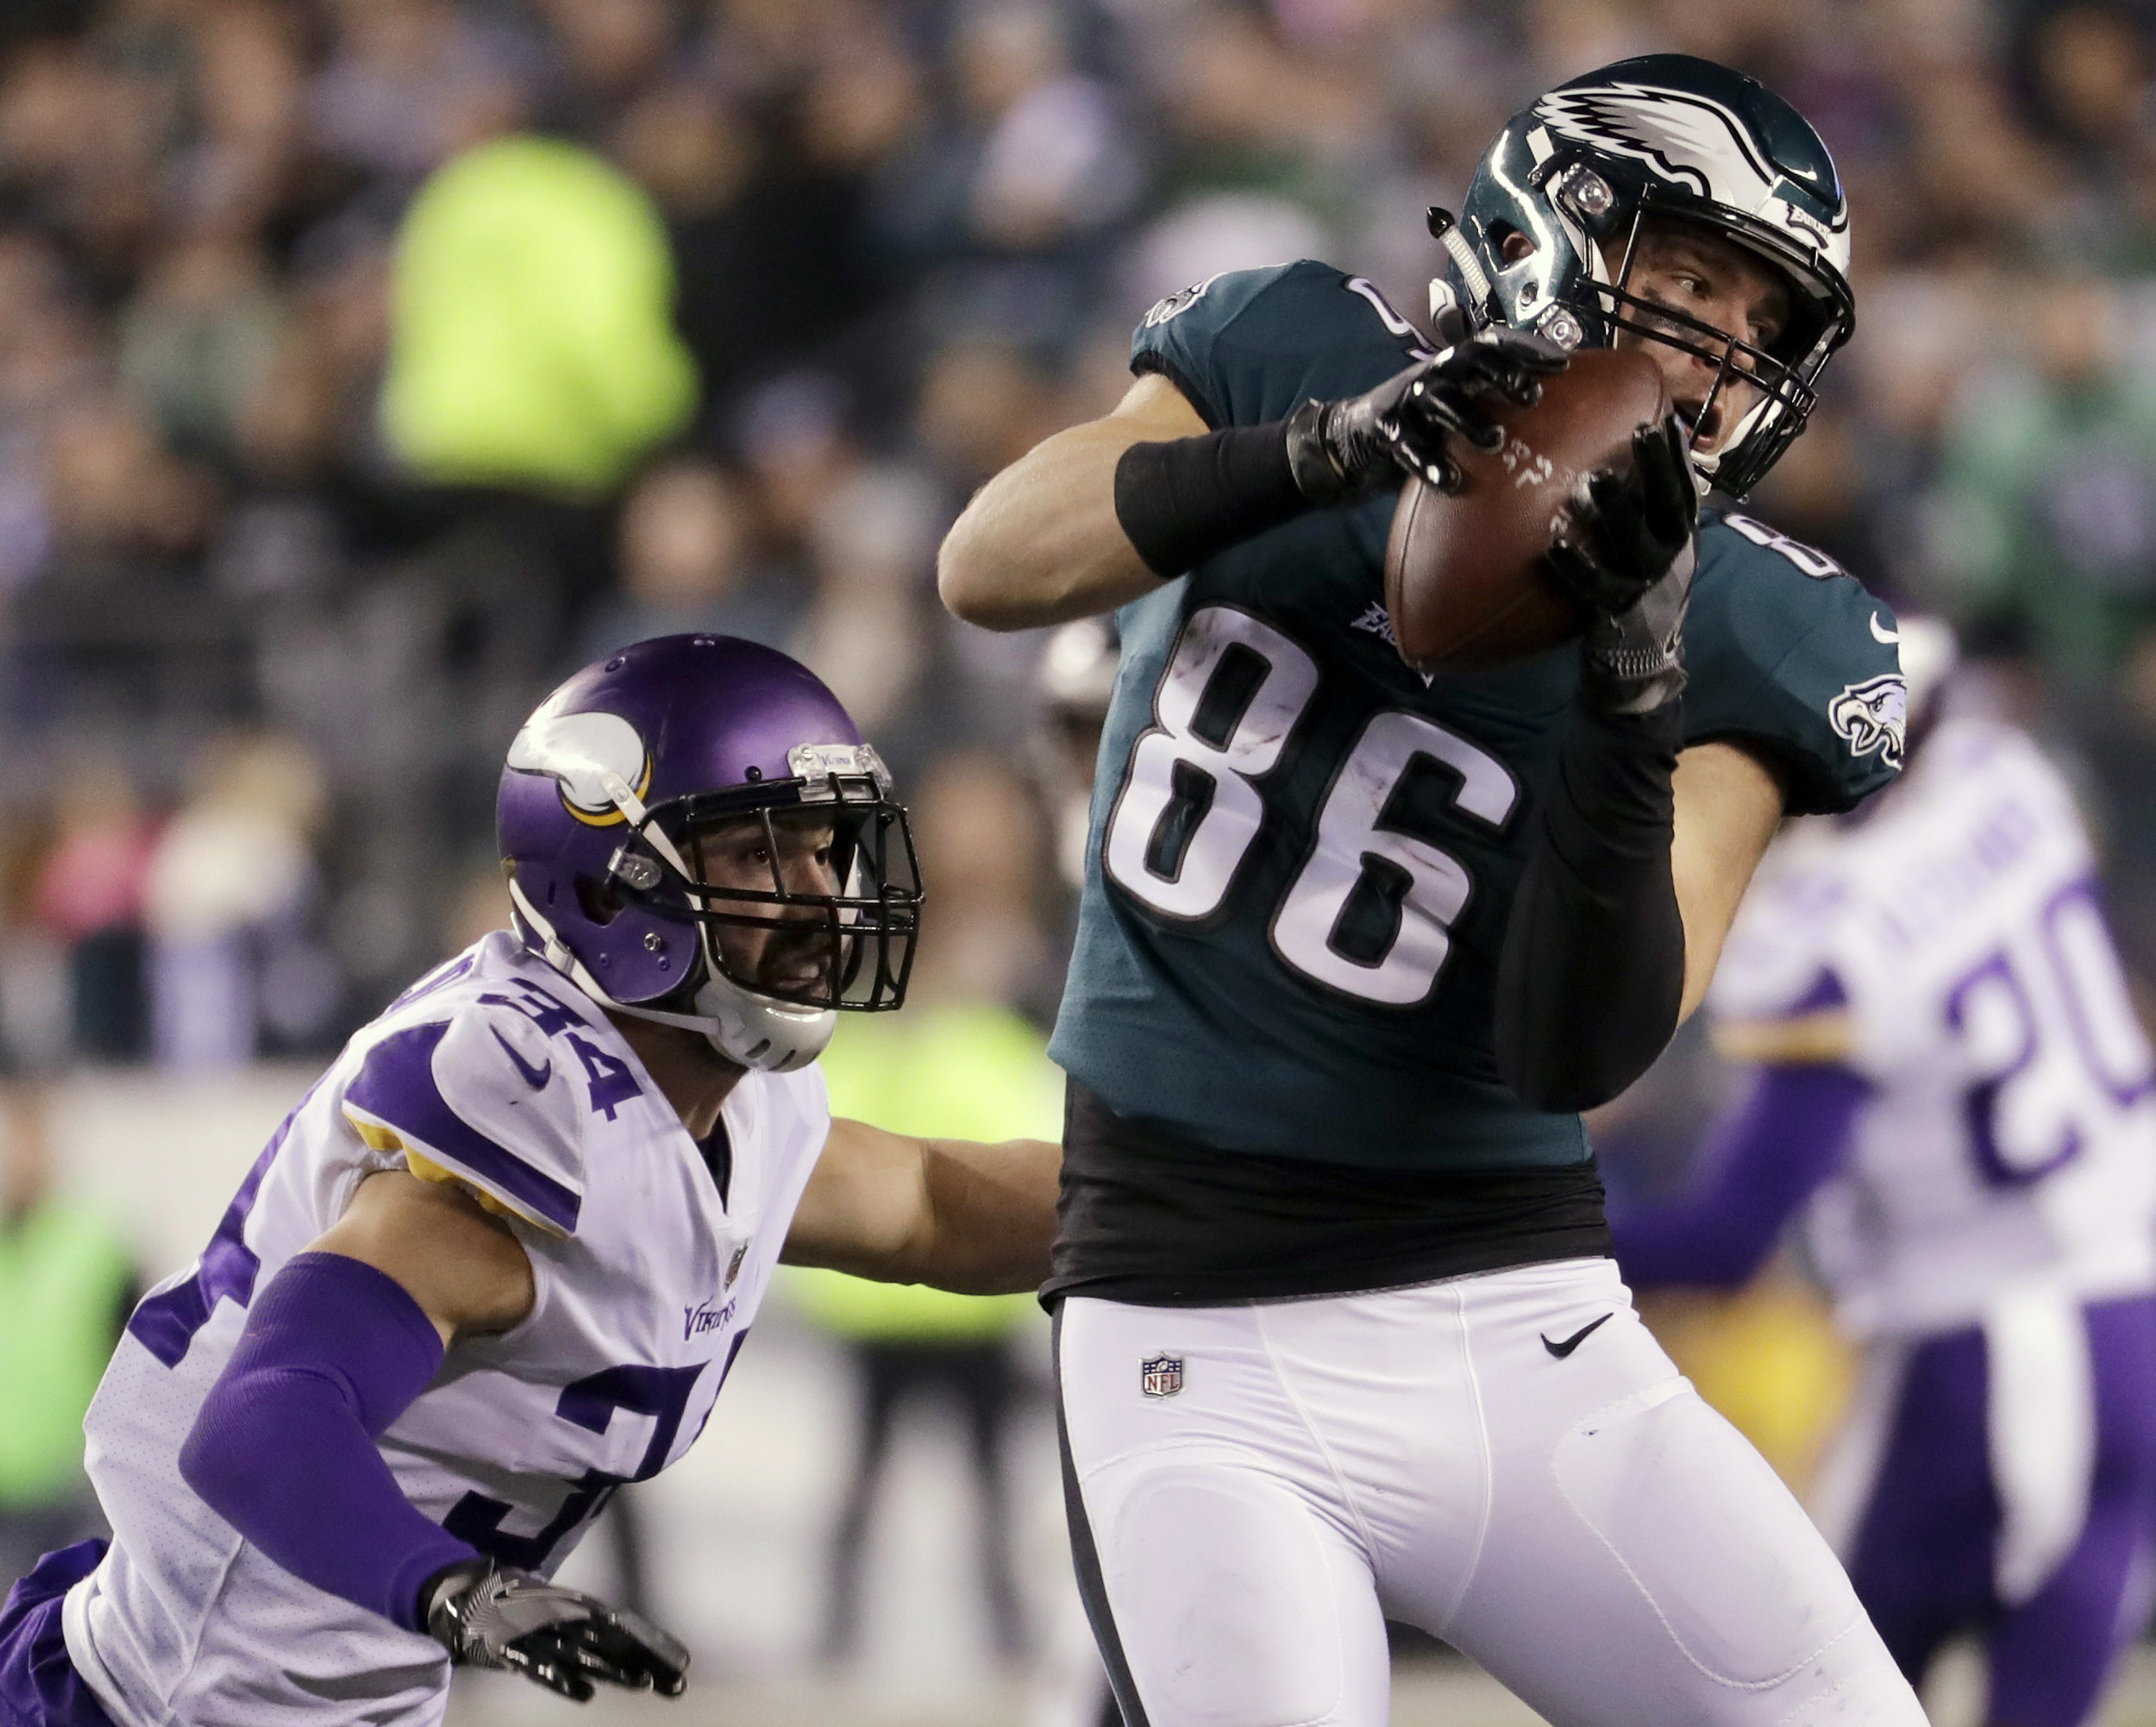 FILE - In this Sunday, Jan. 21, 2018, file photo Philadelphia Eagles' Zach Ertz catches a pass in front of Minnesota Vikings' Andrew Sendejo during the first half of the NFL football NFC championship game in Philadelphia. The Eagles and the New England Patriots are set to meet in Super Bowl 52 on Sunday, Feb. 4, 2018, in Minneapolis. (AP Photo/Michael Perez, File)